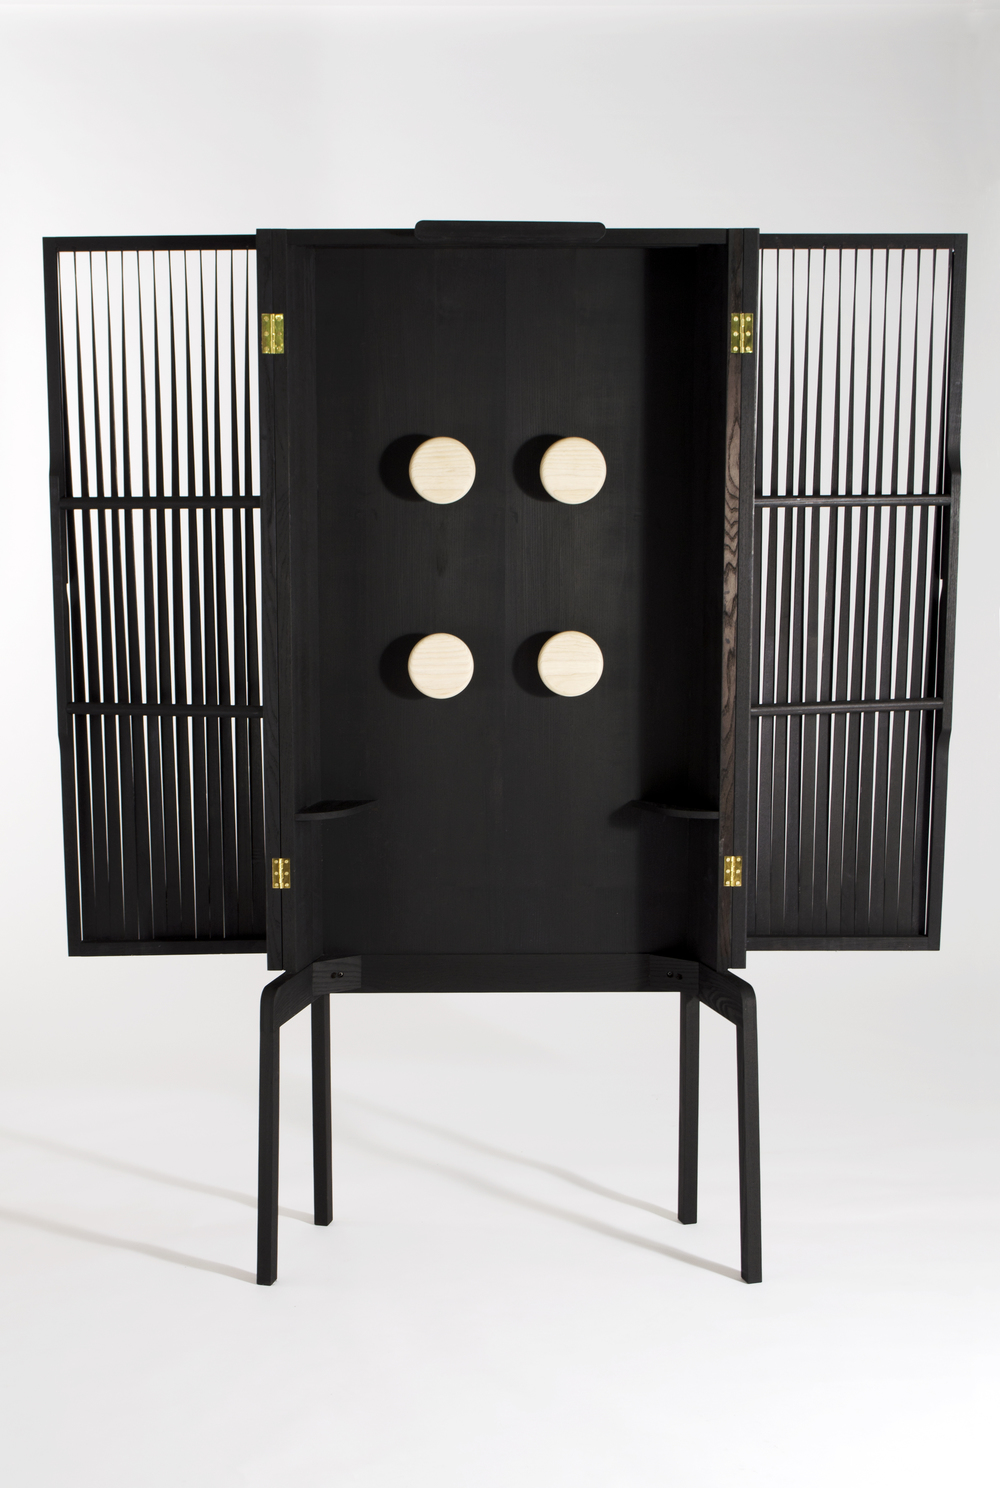 Cabinet by Charlie Styrbjörn Nilsson in collaboration with Olle K Engberg and Ludwig Berg (6).jpg